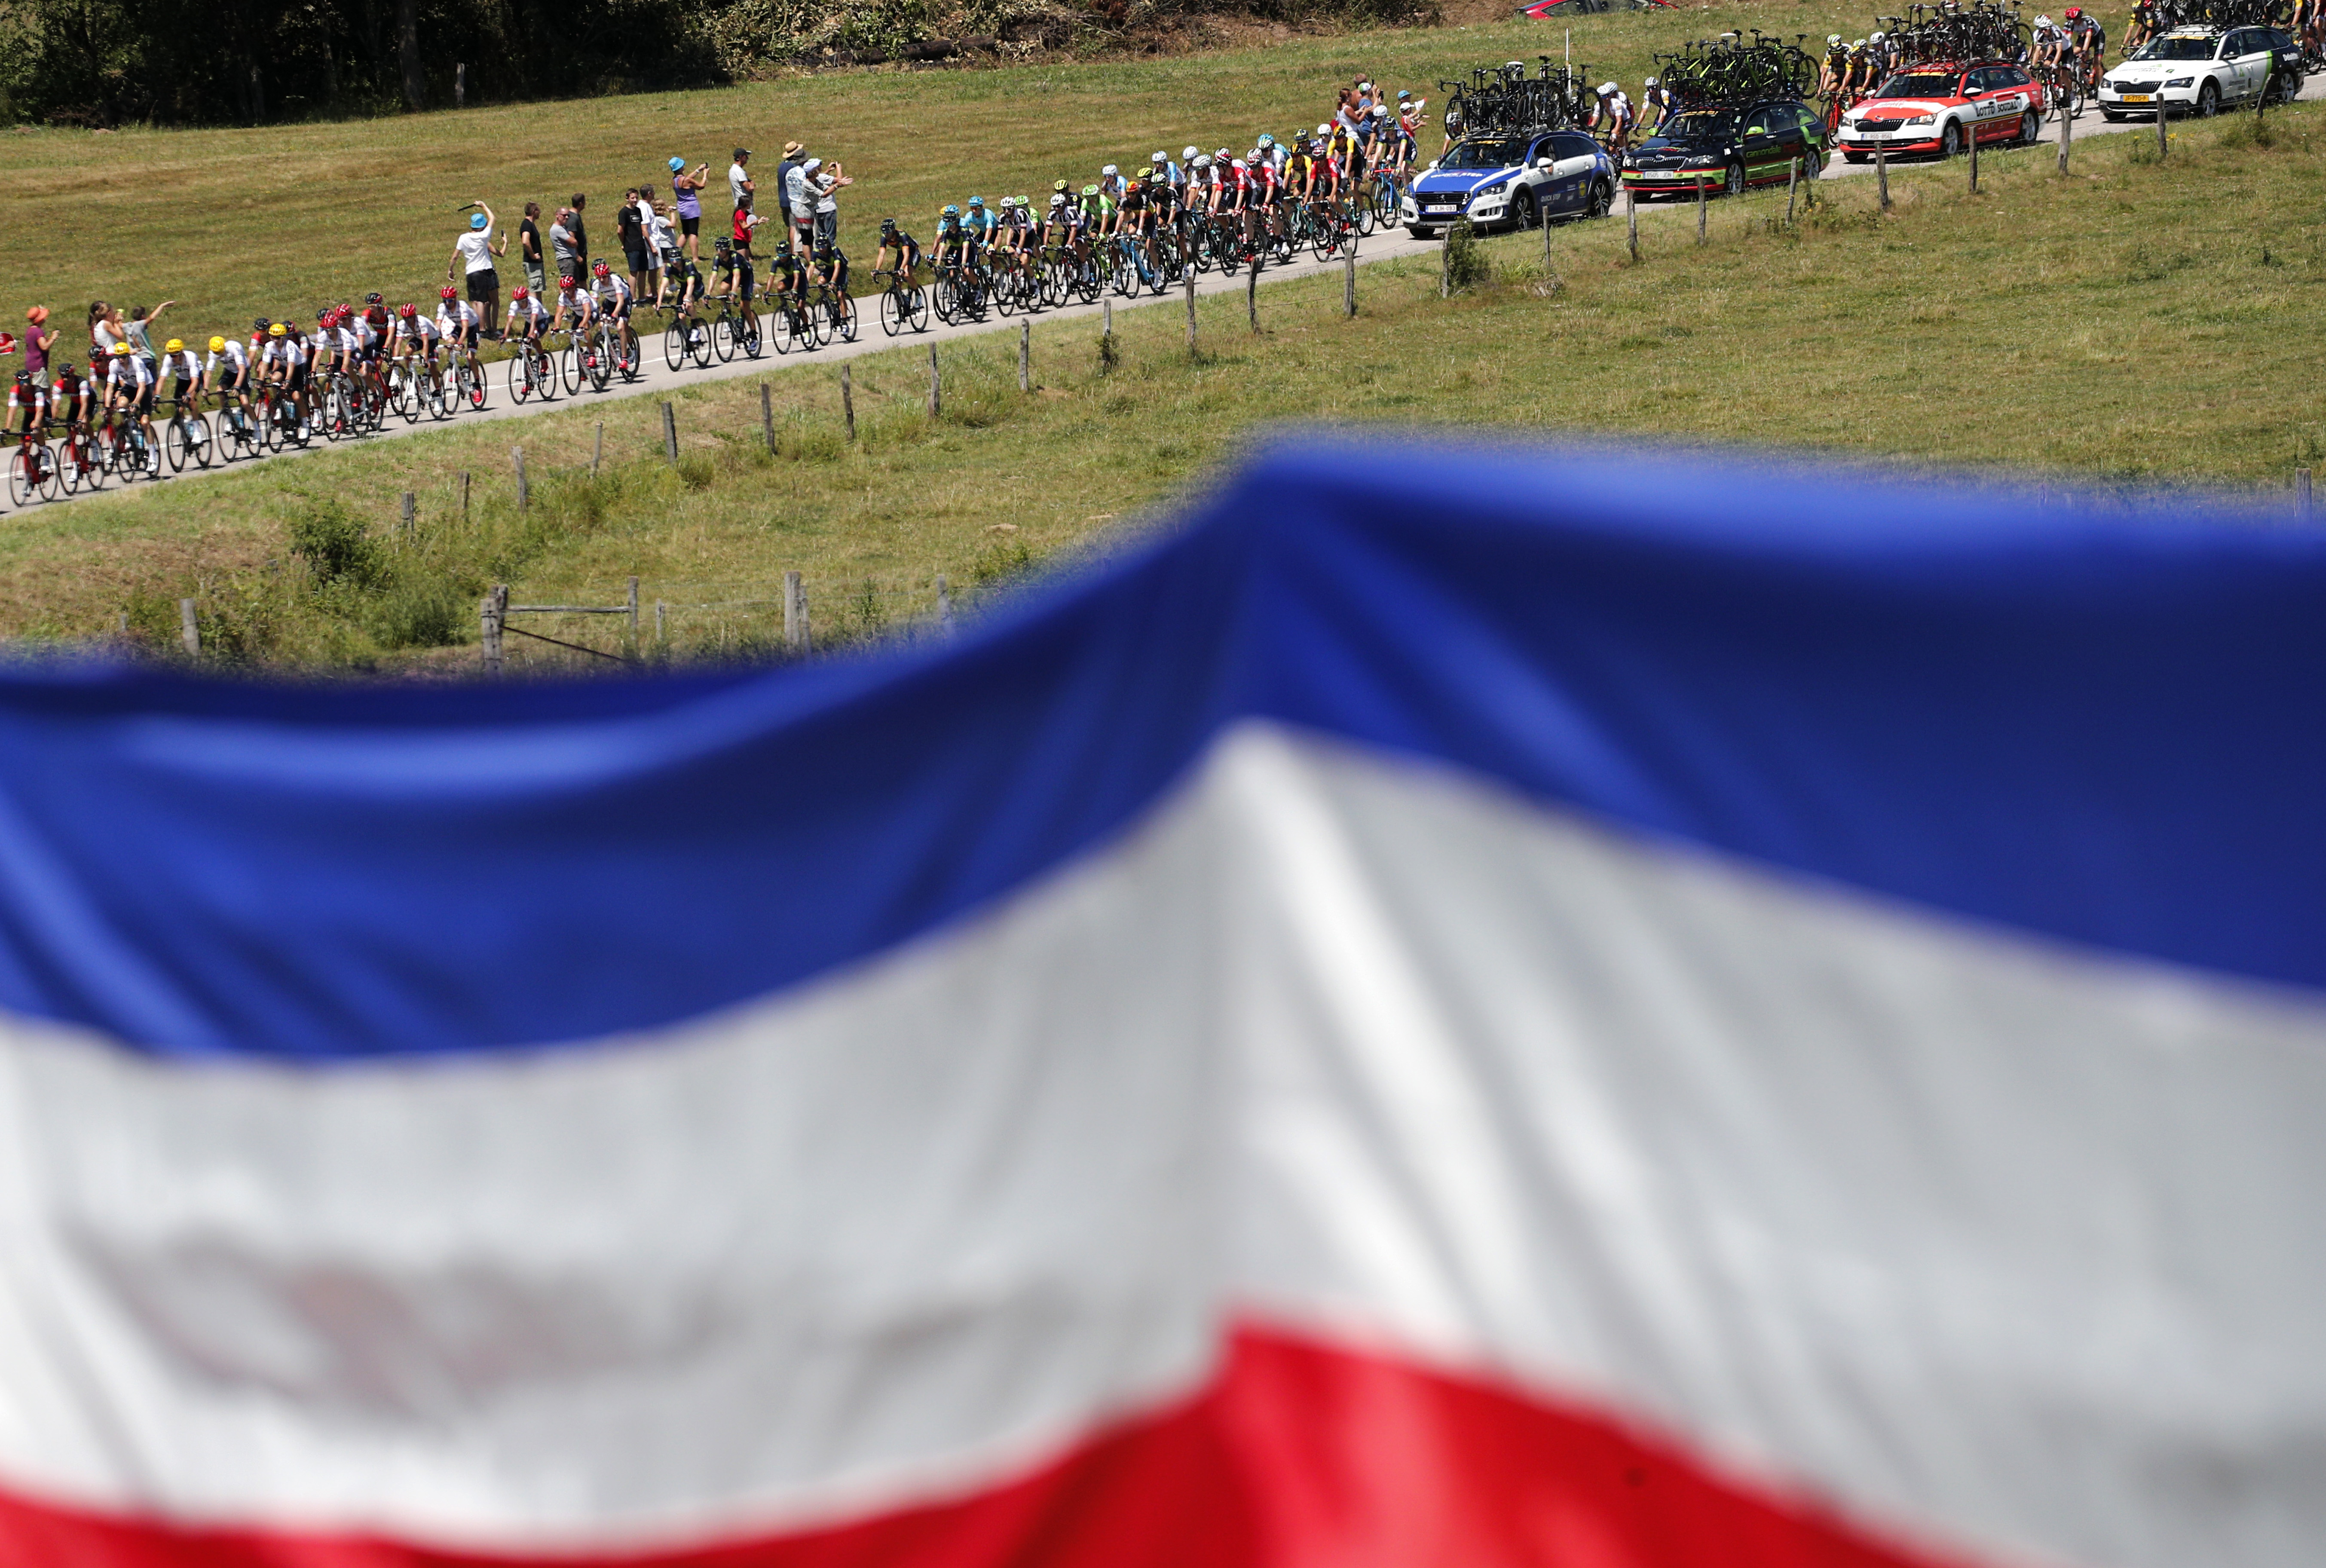 A french flag hangs from a fence as the pack approaches during the fifth stage of the Tour de France cycling race over 160.5 kilometers (99.7 miles) with start in Vittel and finish in La Planche des Belles Filles, France, Wednesday, July 5, 2017. (AP Photo/Christophe Ena)